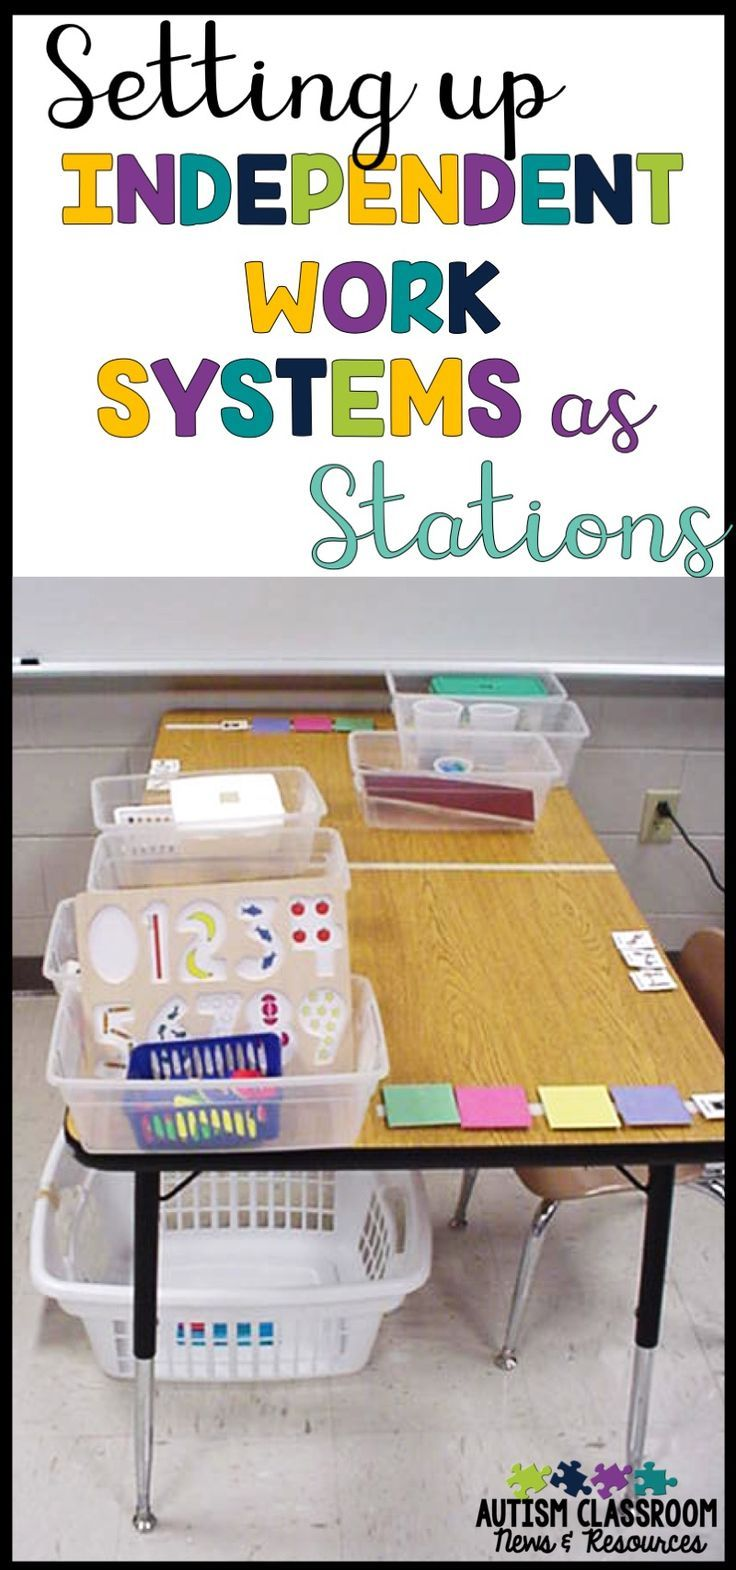 Setting Up Independent Work System Stations